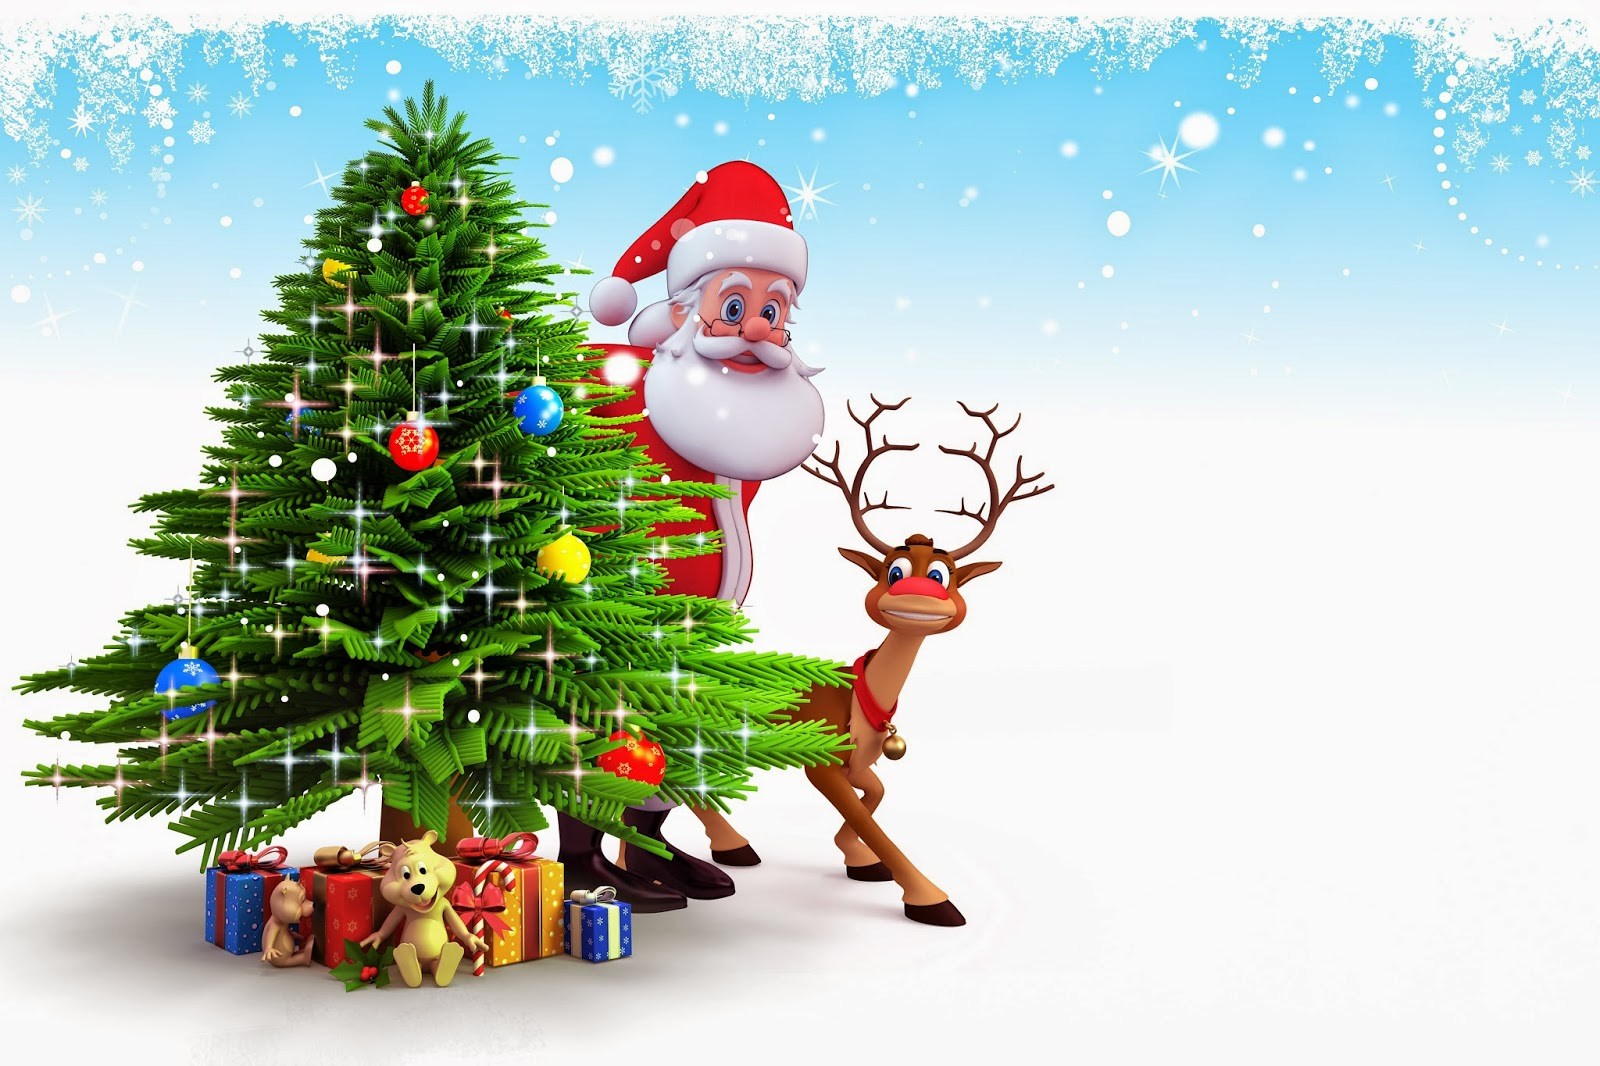 Christmas cartoon animation children images pictures for kids facebook 1600x1066